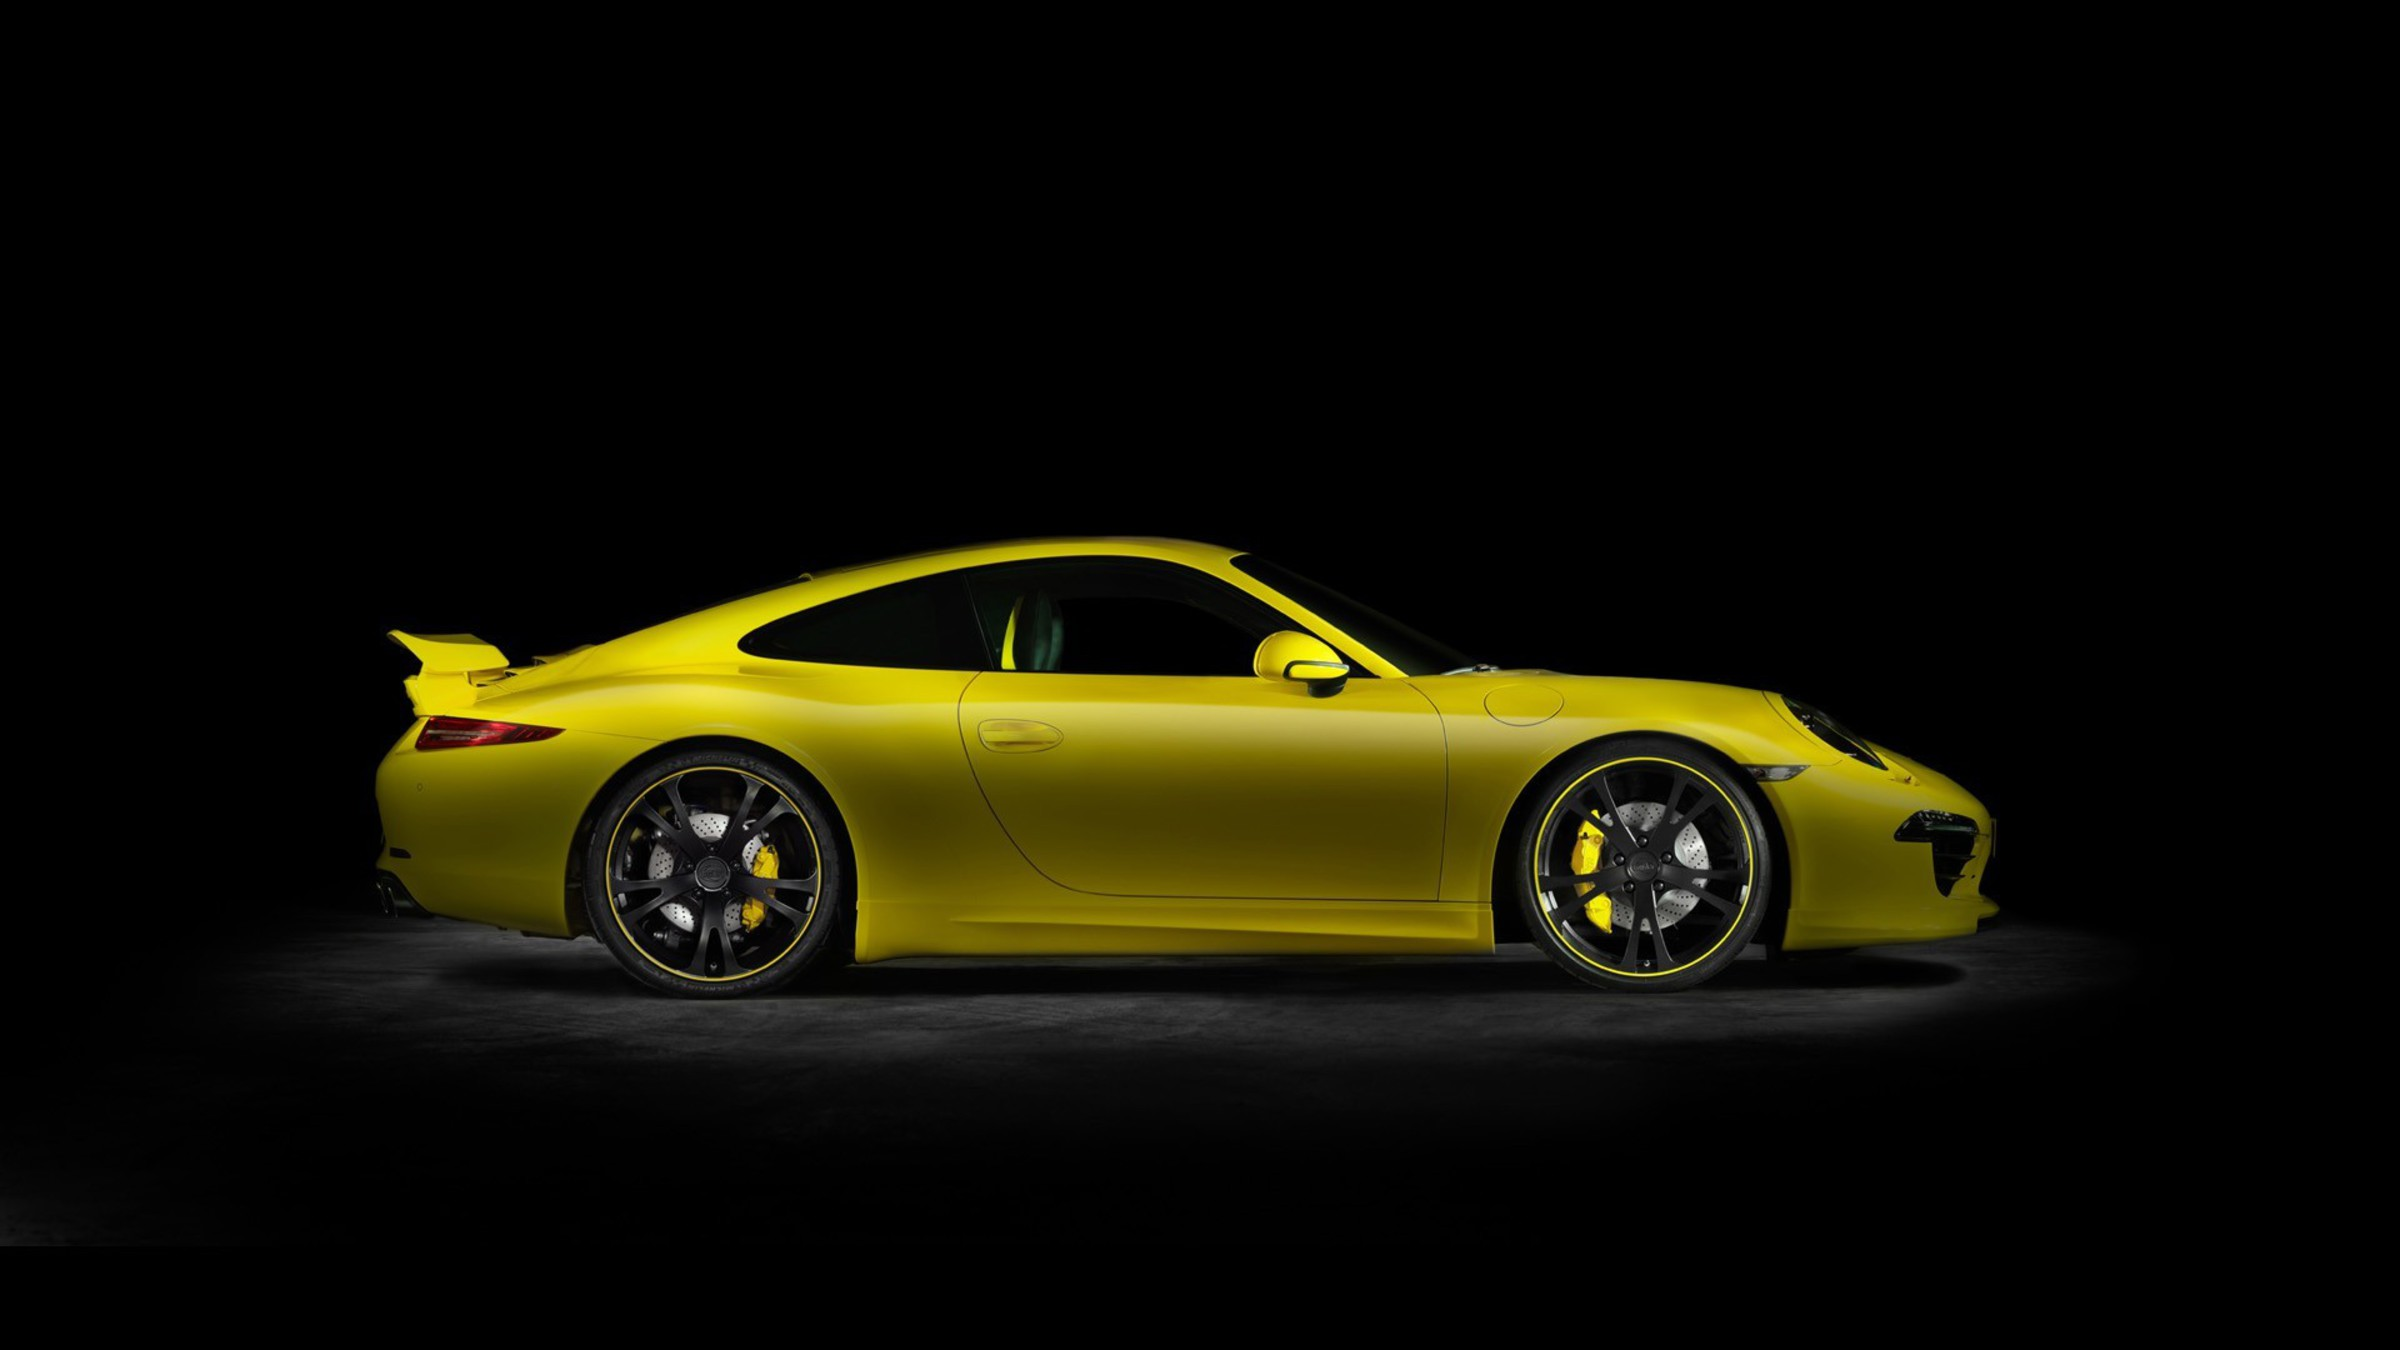 Porsche 911 Techart Yellow Cars Wallpaper Allwallpaperin 14773